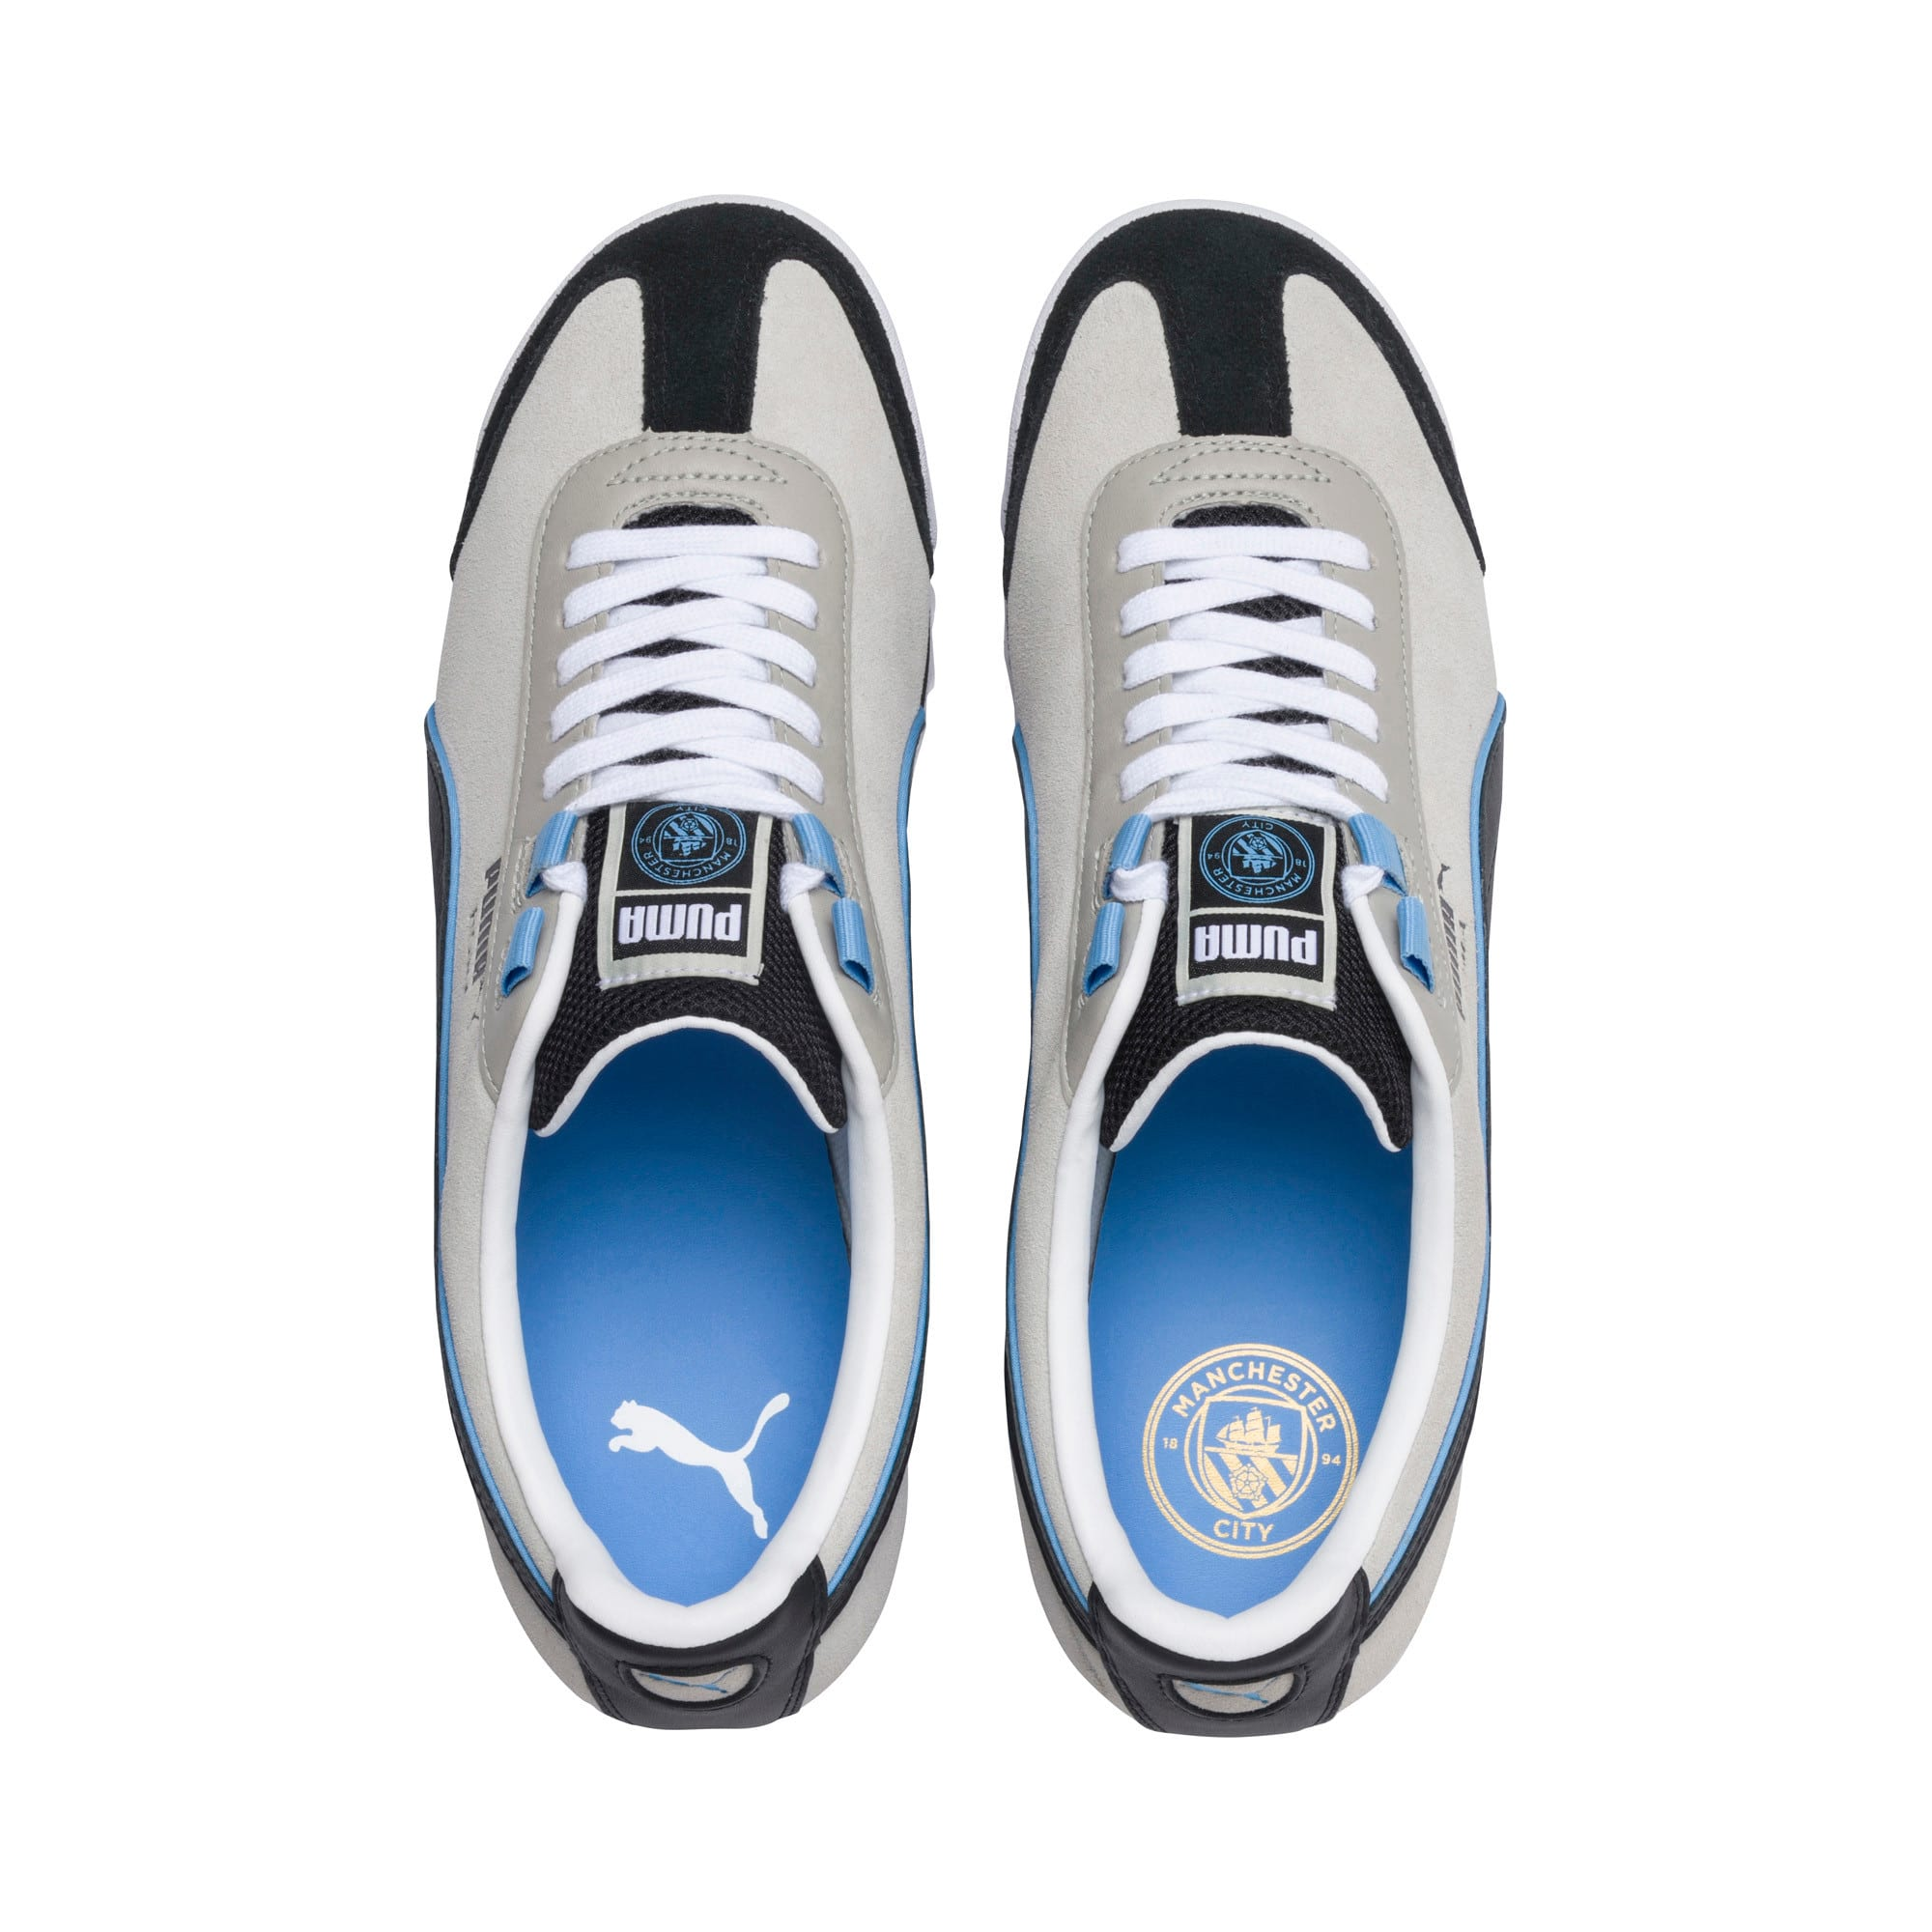 Thumbnail 6 of Roma x Manchester City sportschoenen, Gray Violet-Team Light Blue, medium